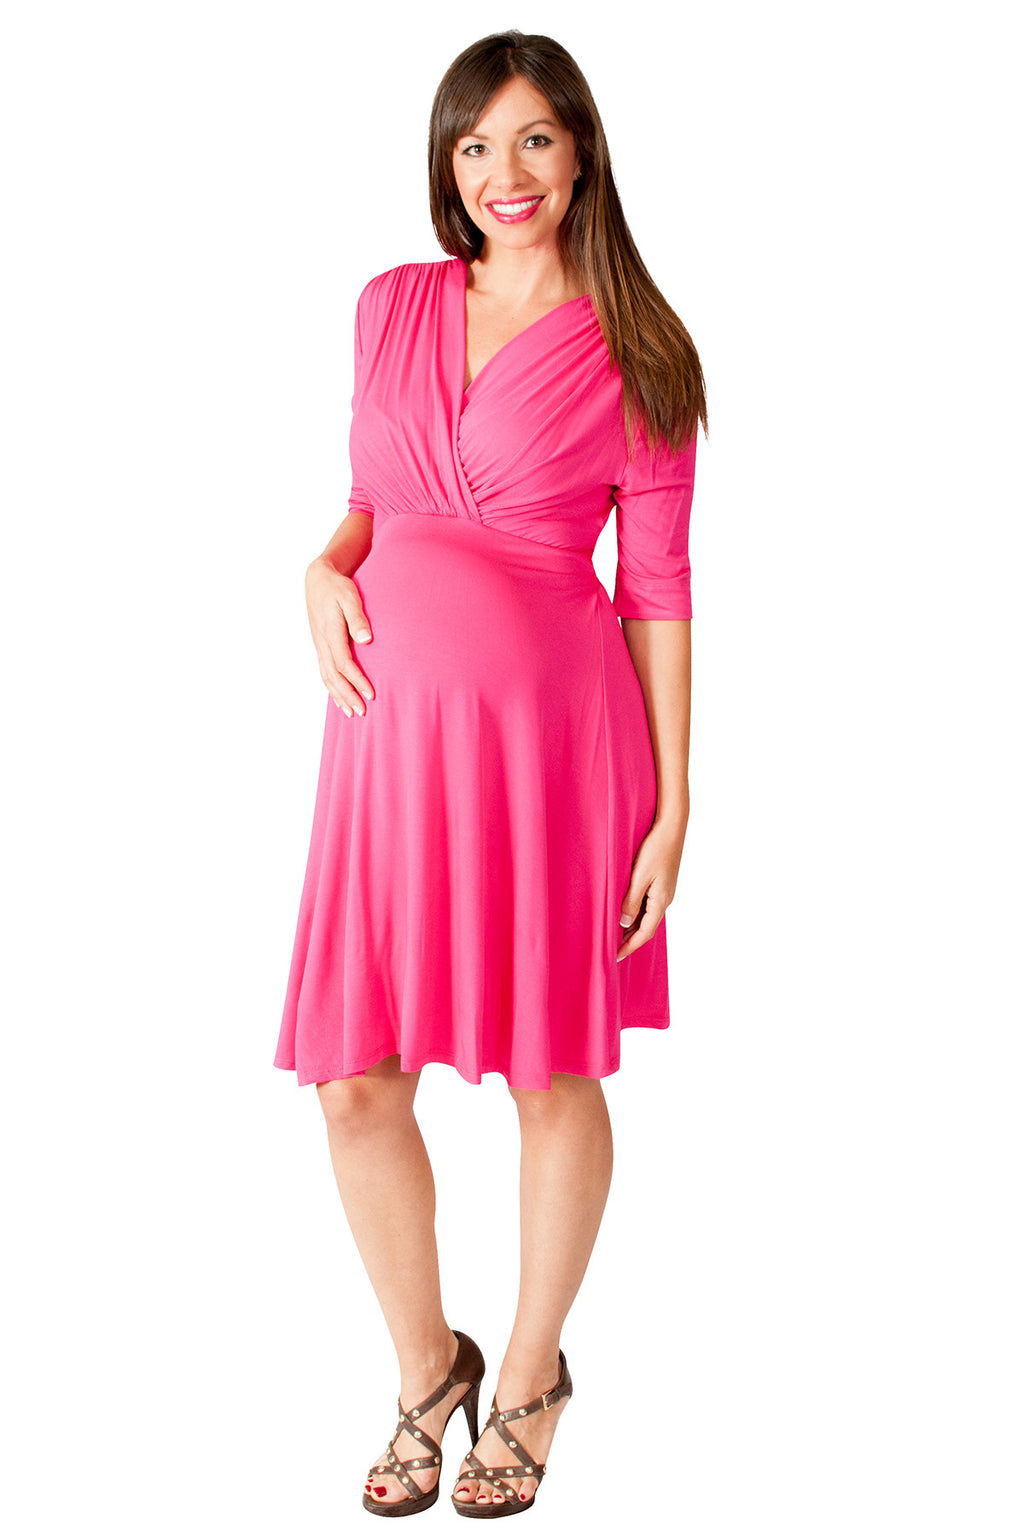 pink baby shower dresses